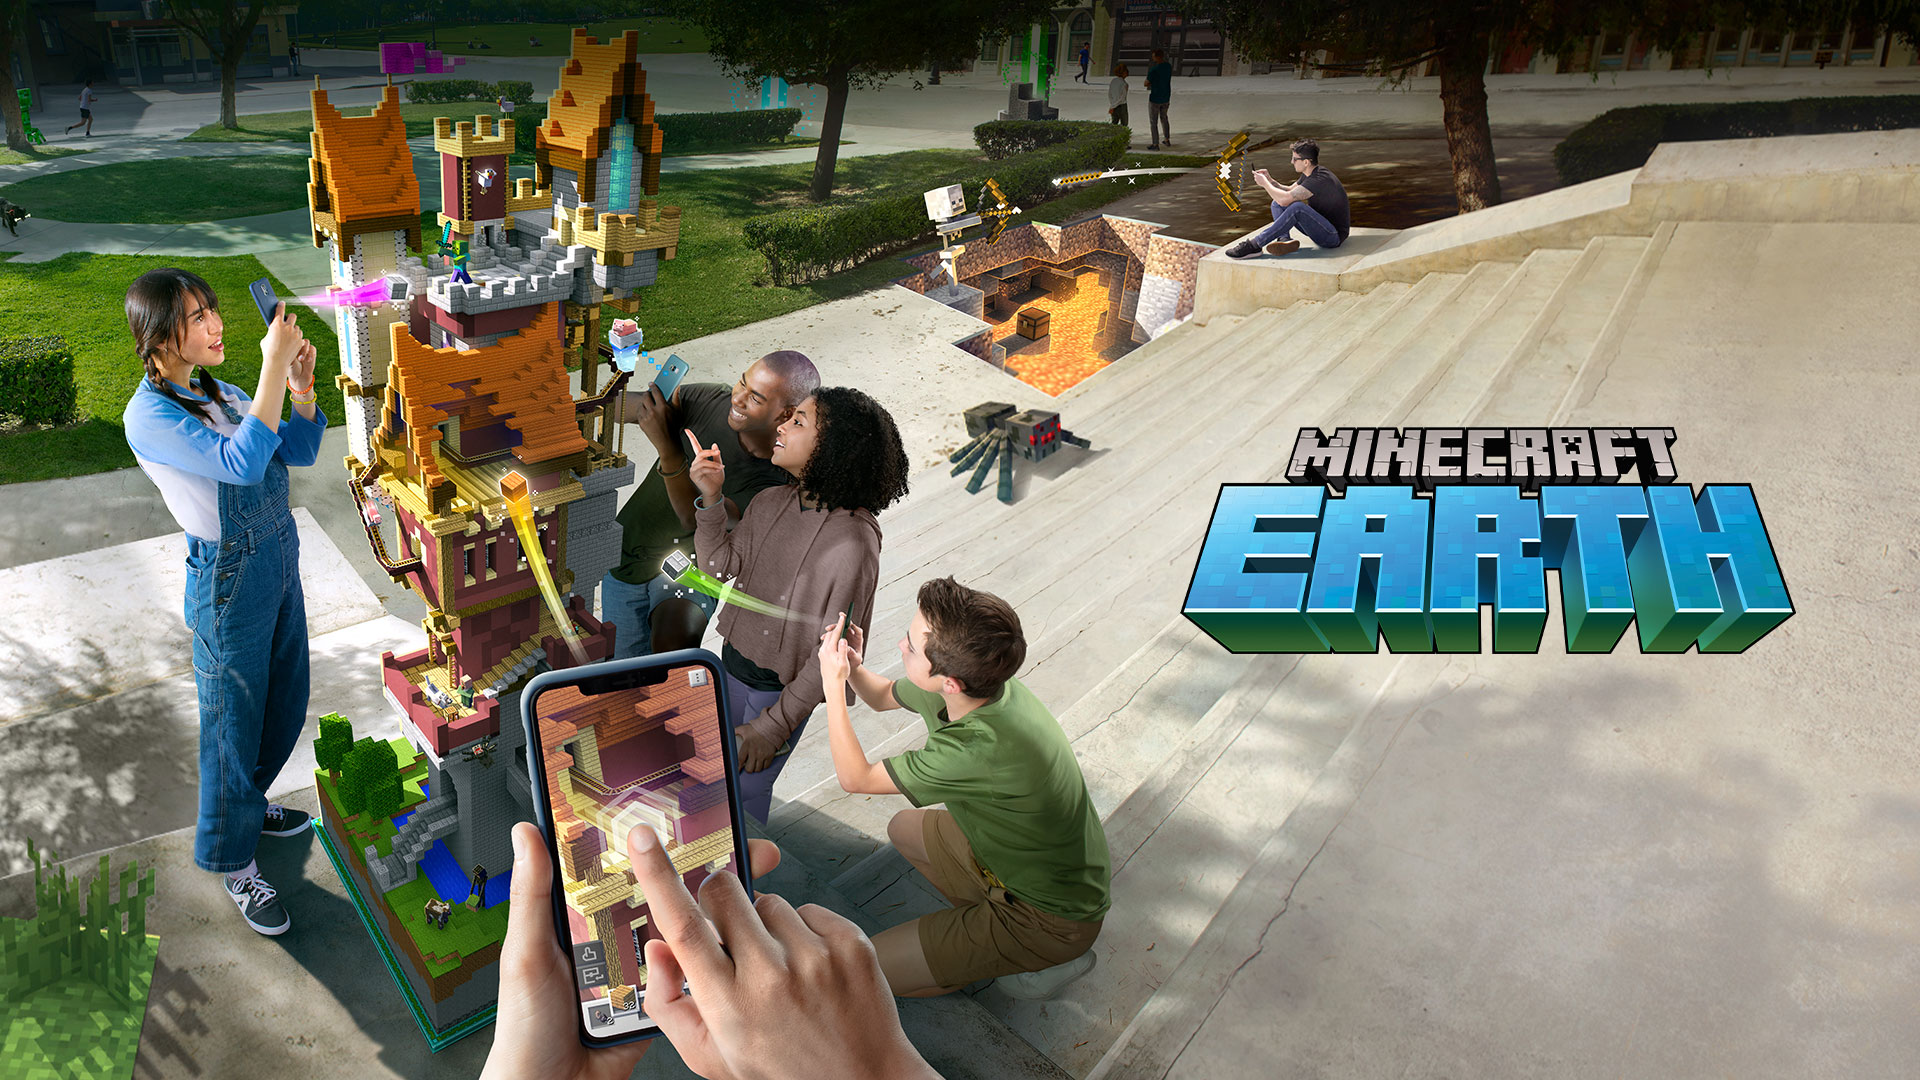 Minecraft Earth, A group of people on the steps at a park playing Minecraft Earth on their mobile devices